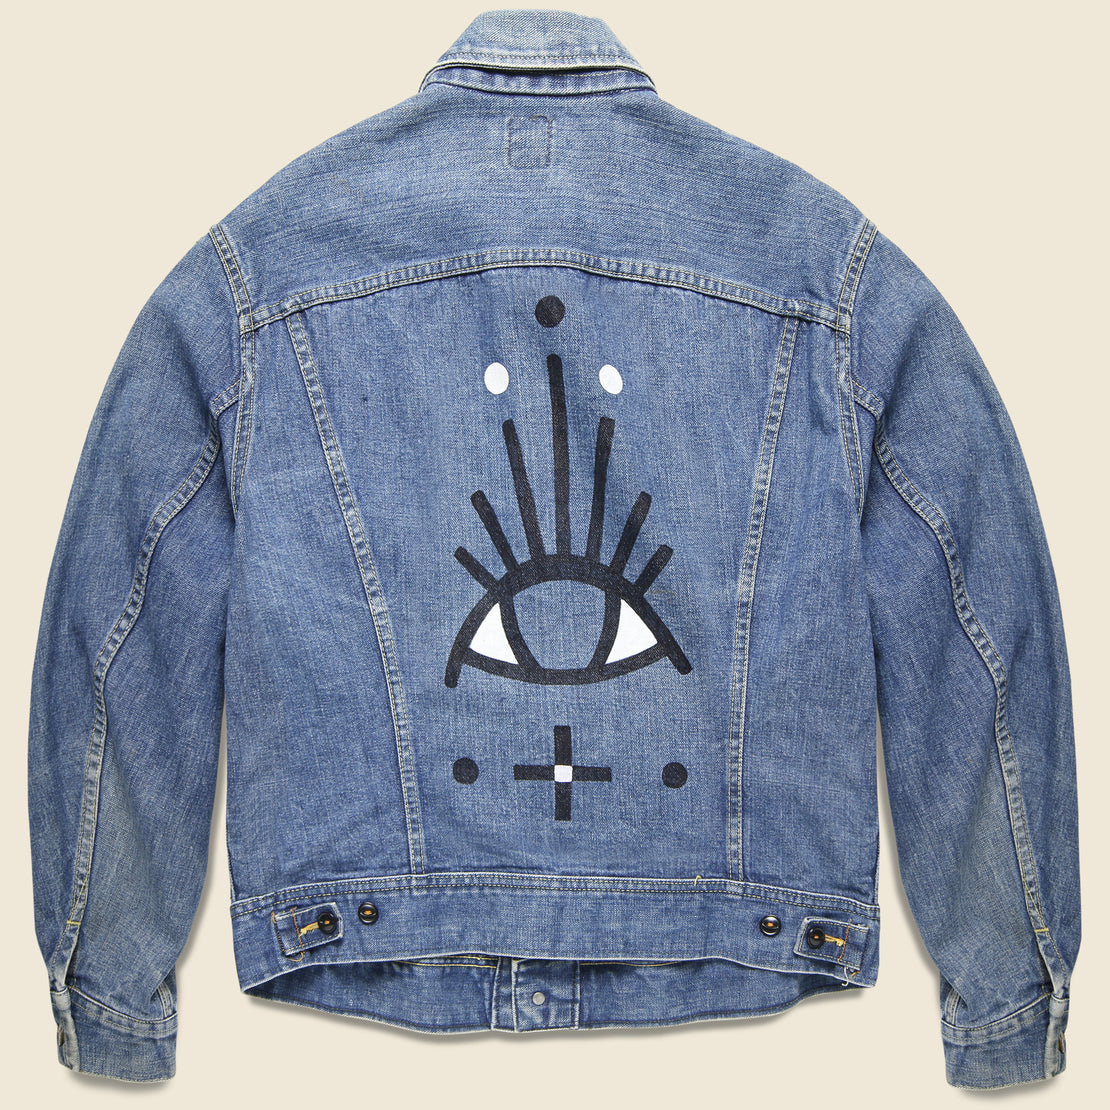 Tom Jean Webb Vintage Lee Rider Jacket - All Seeing Eye